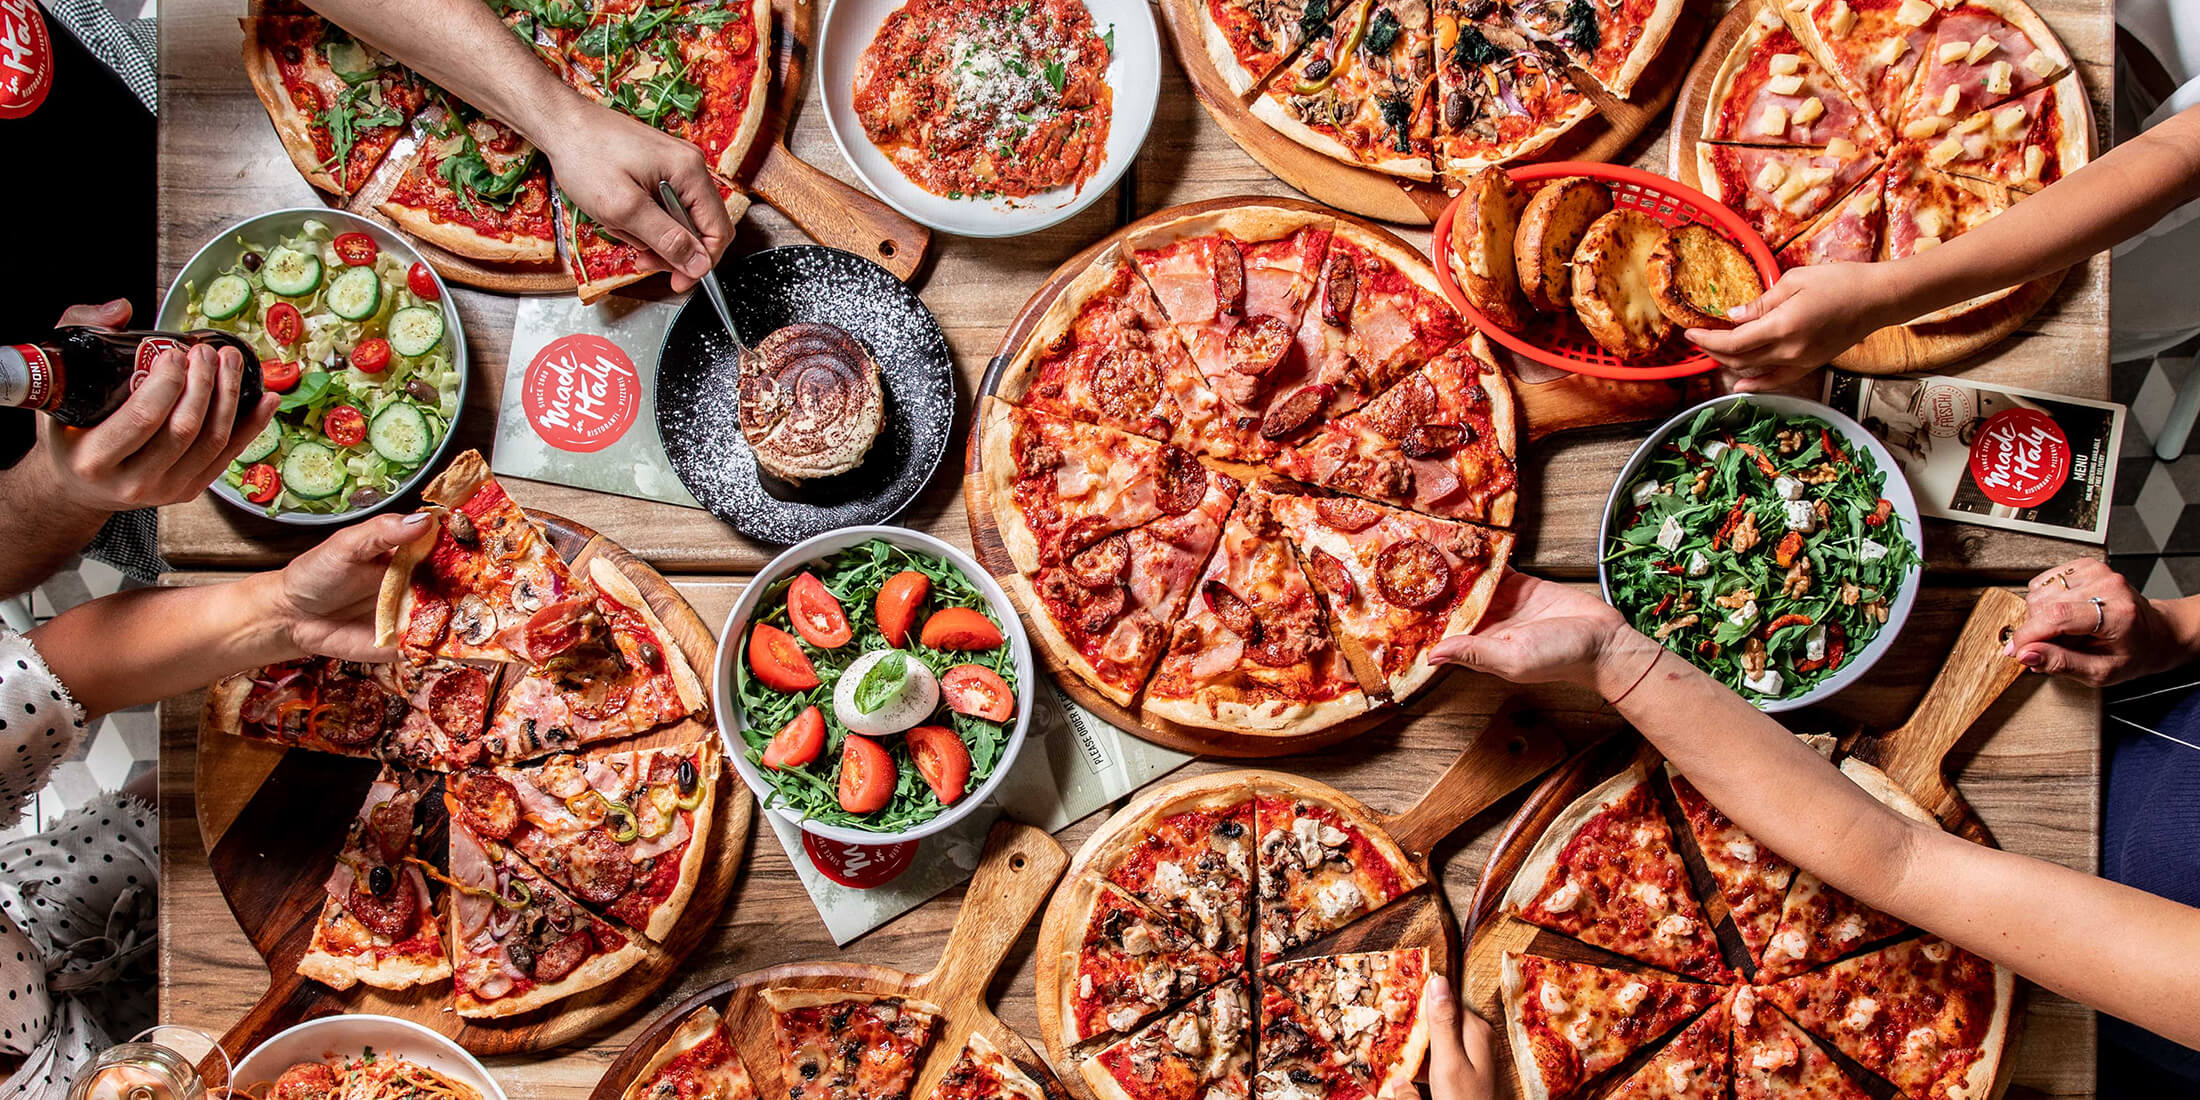 The best Italian food in Wareemba, pizza & pasta delivery near, food delivery Wareemba